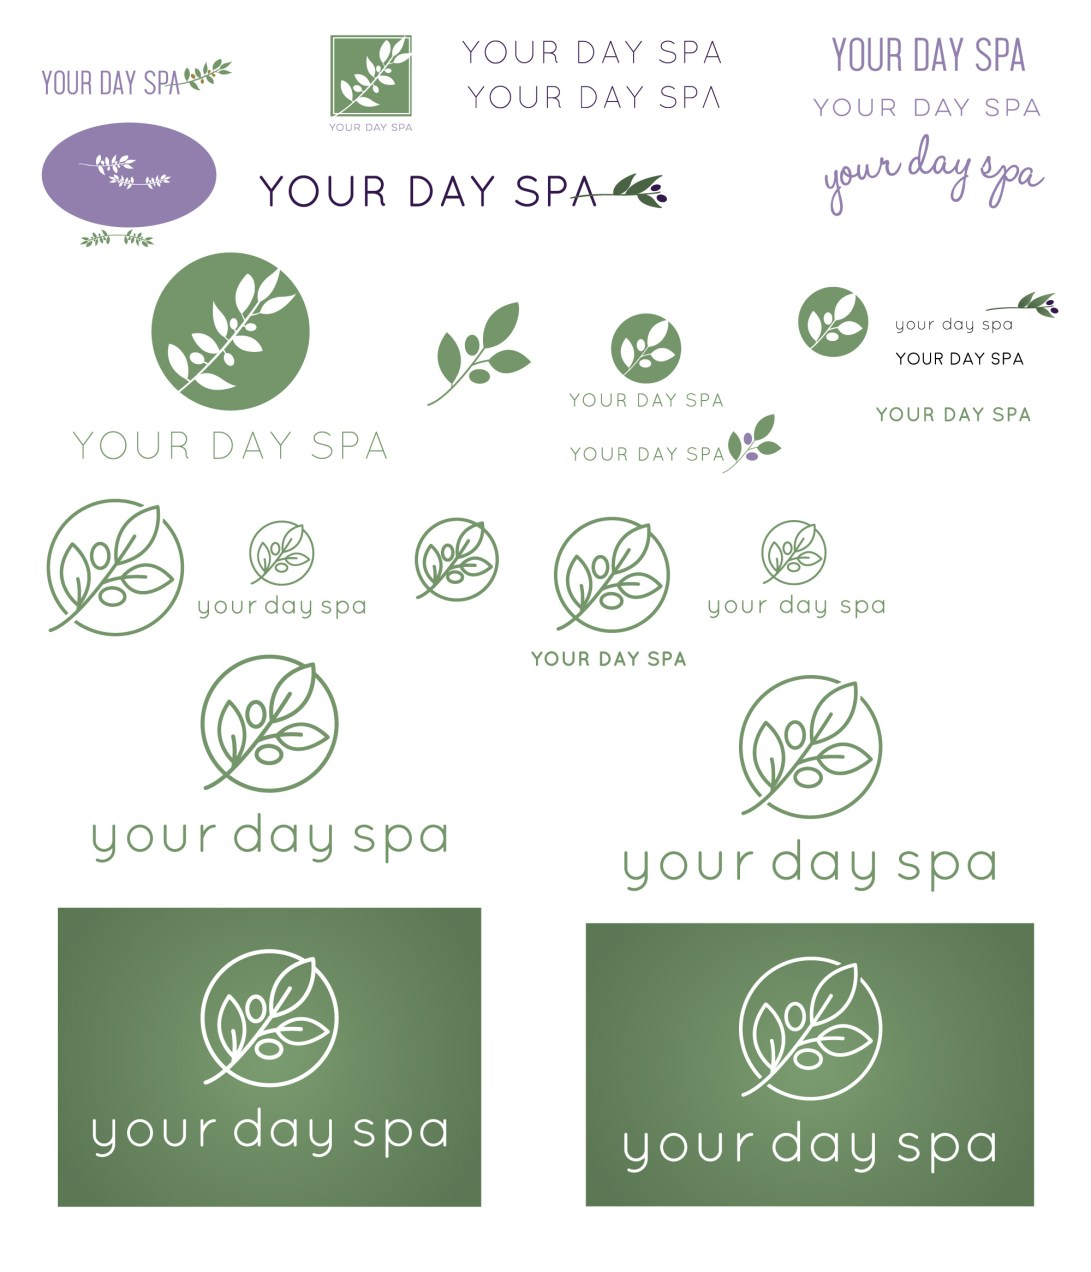 YourDaySpa-logo sketches